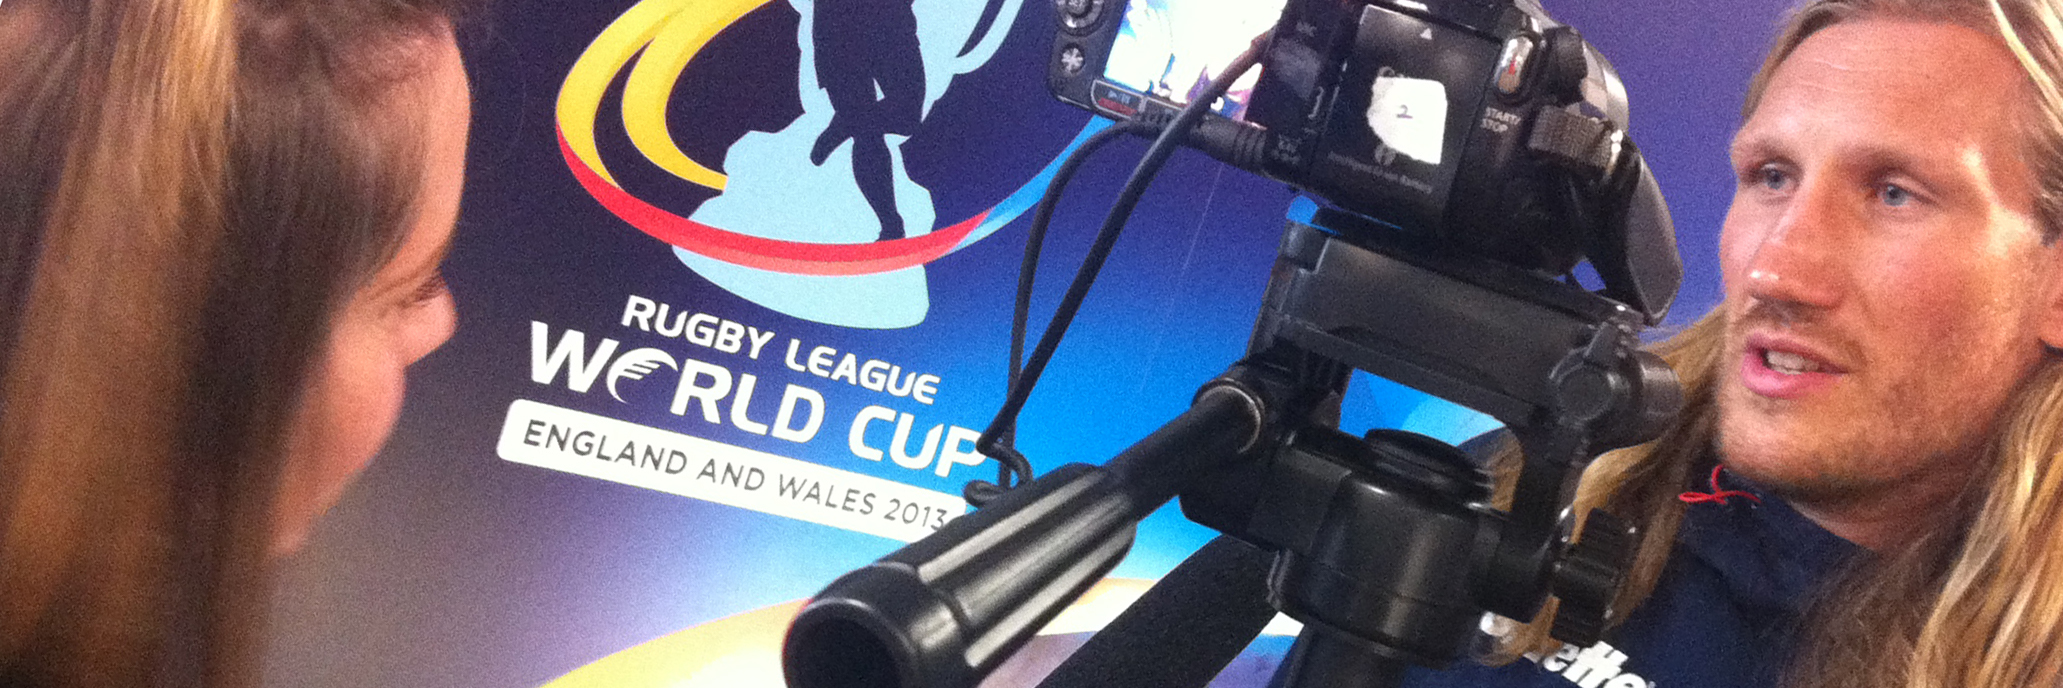 Rugby League World Cup Press Conference